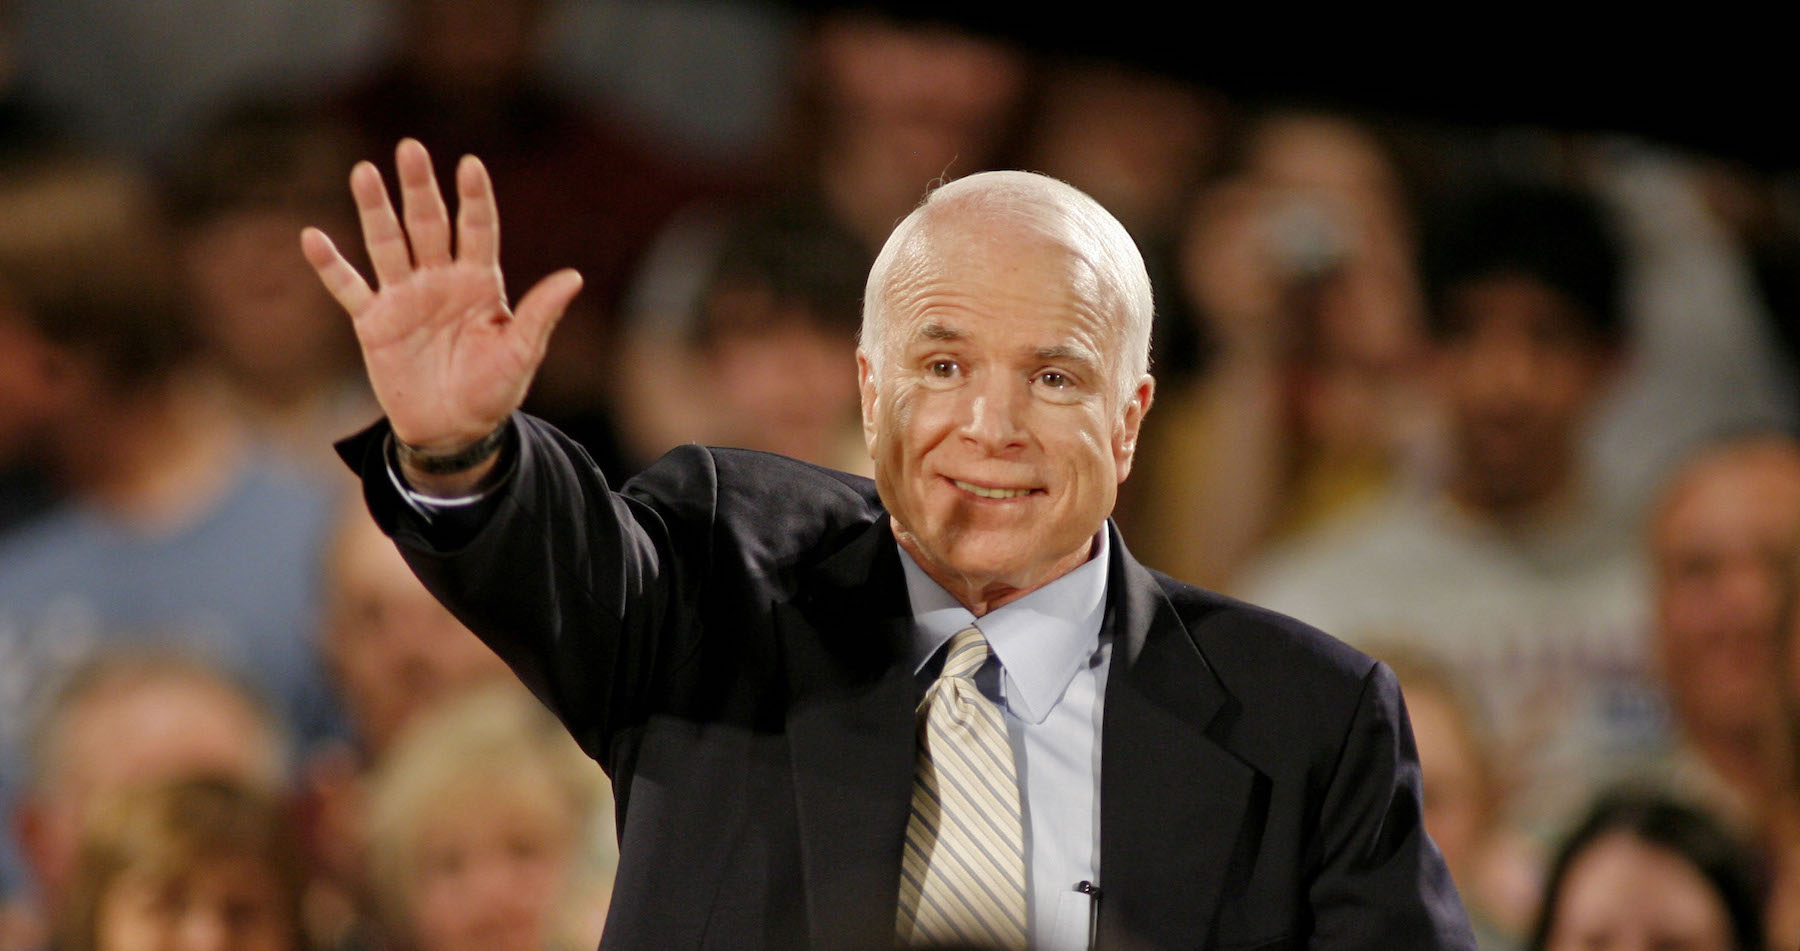 Republican presidential candidate Sen. John McCain, R-Ariz., waves to supporters before speaking at a town hall-style meeting on May 29, 2008, in Greendale, Wisc.